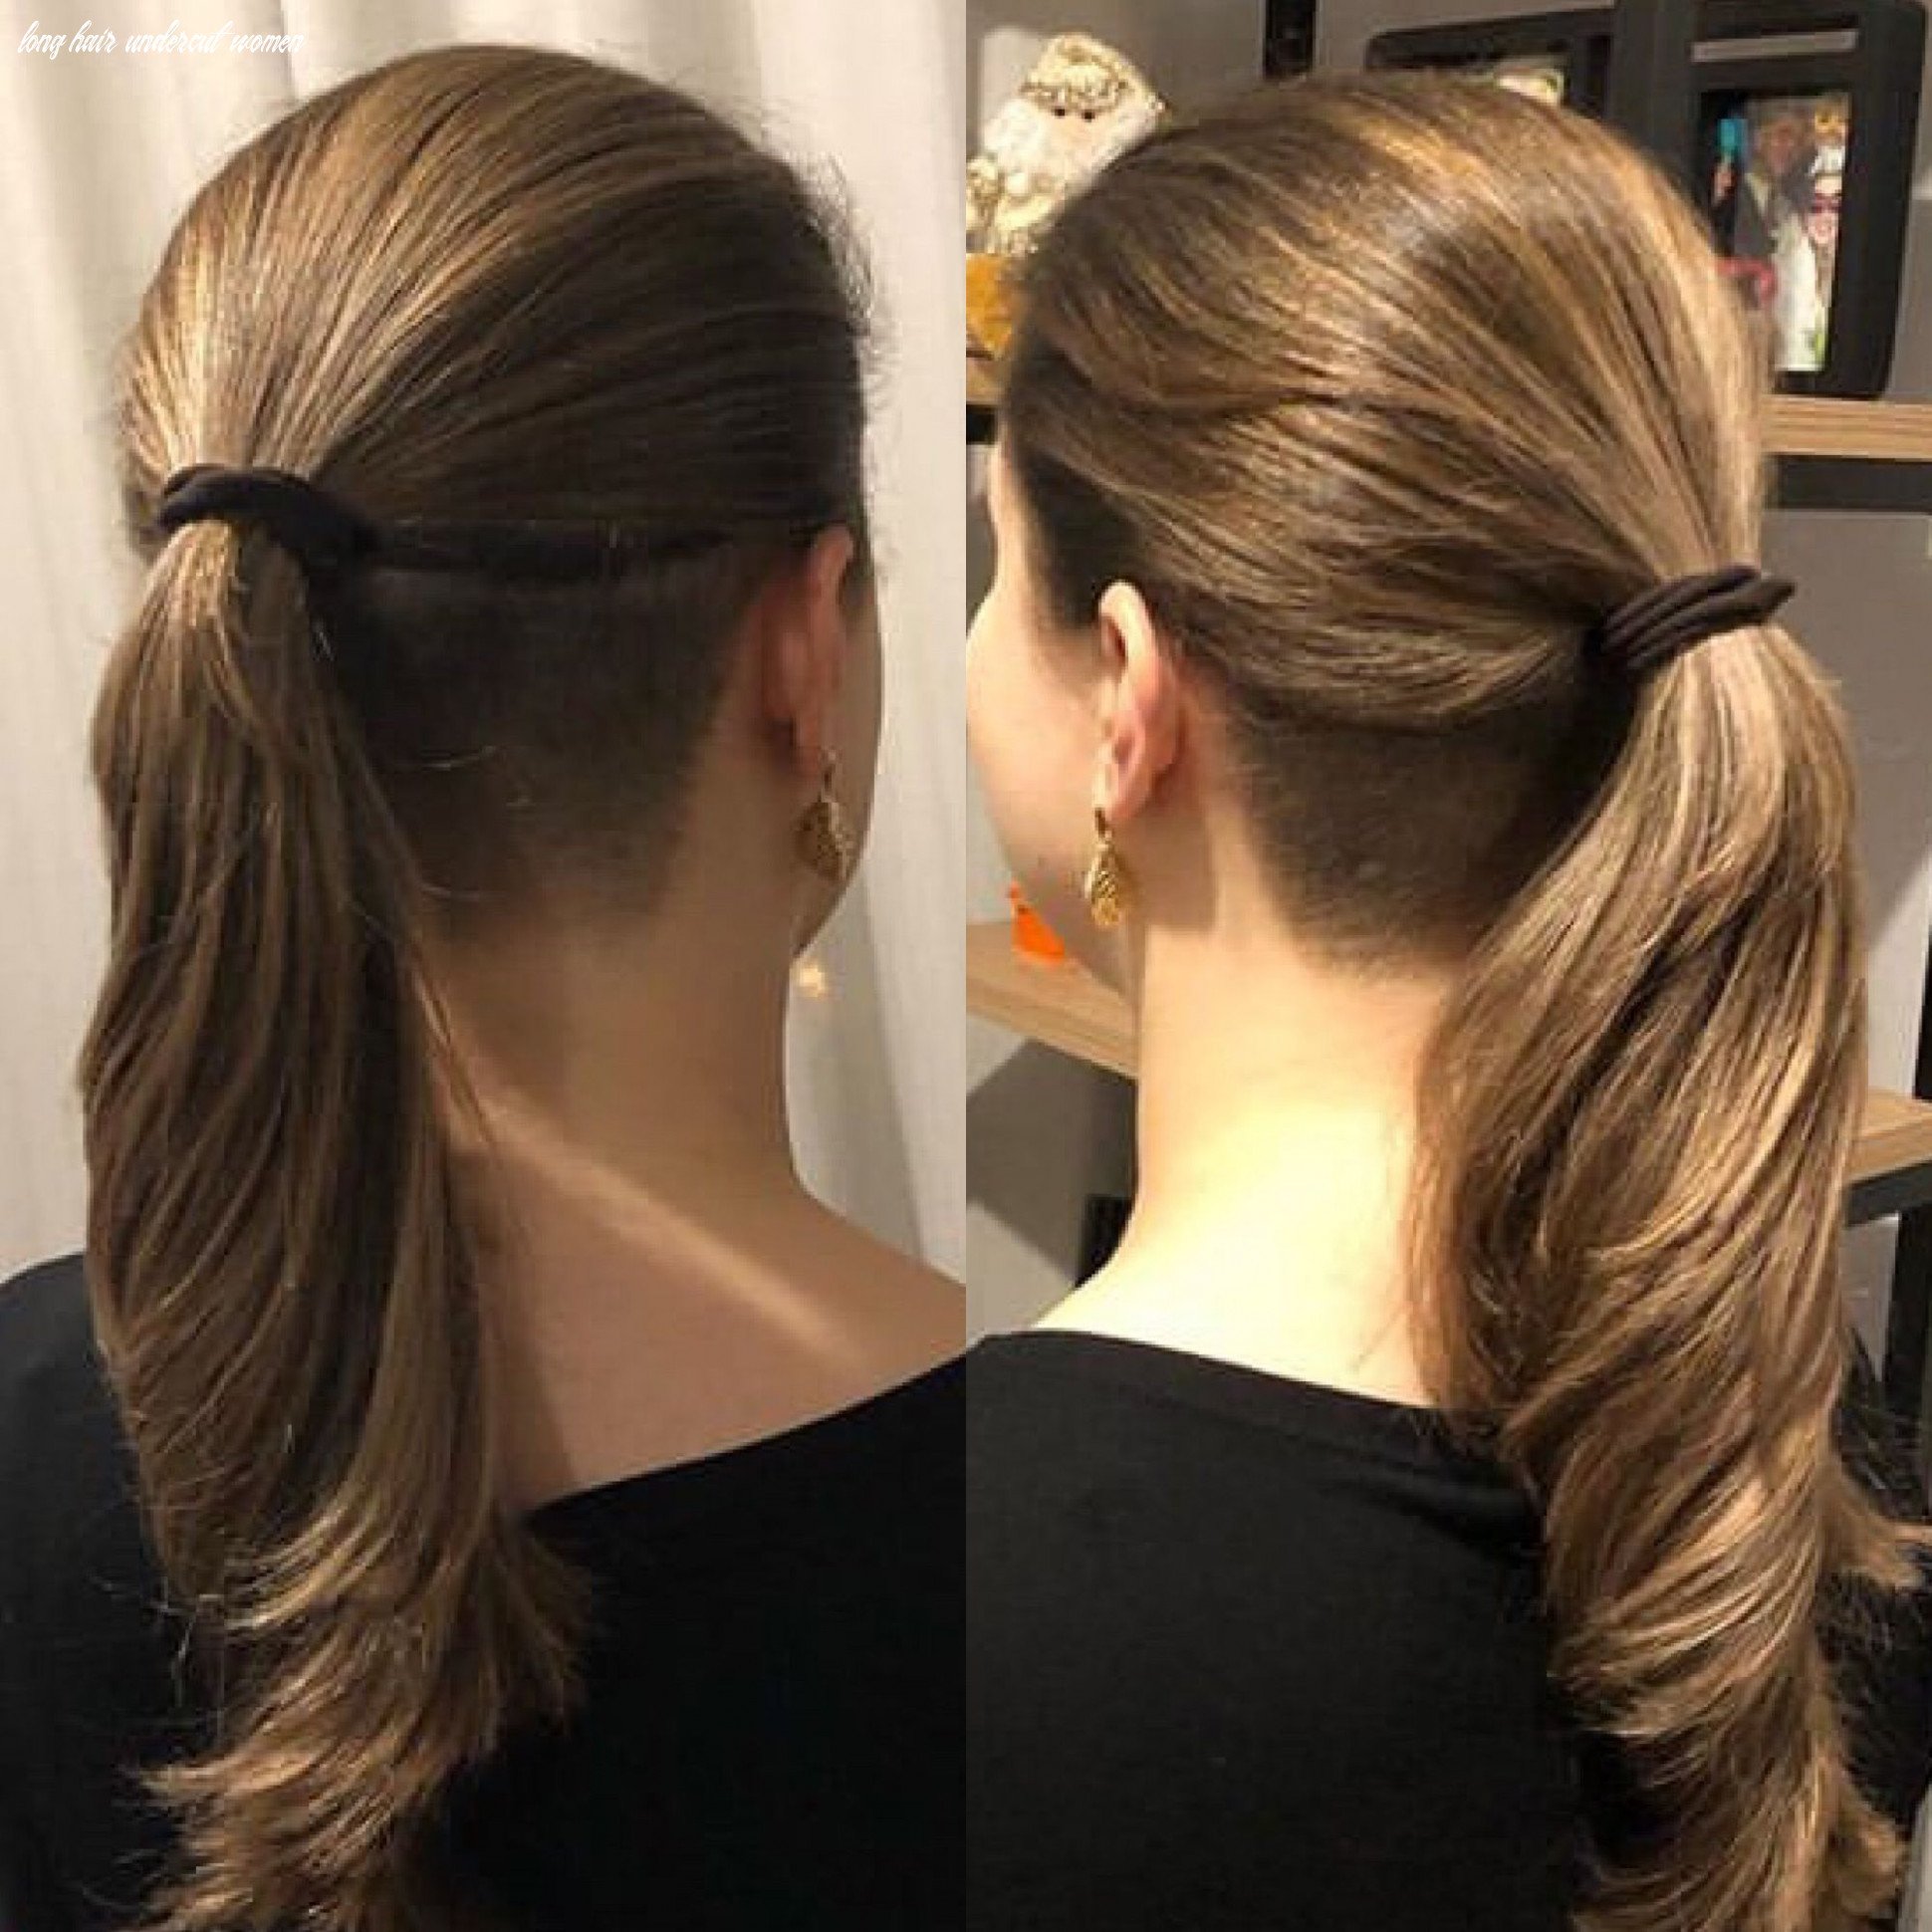 Pin by closet hair on hc | undercut hairstyles, long hair styles